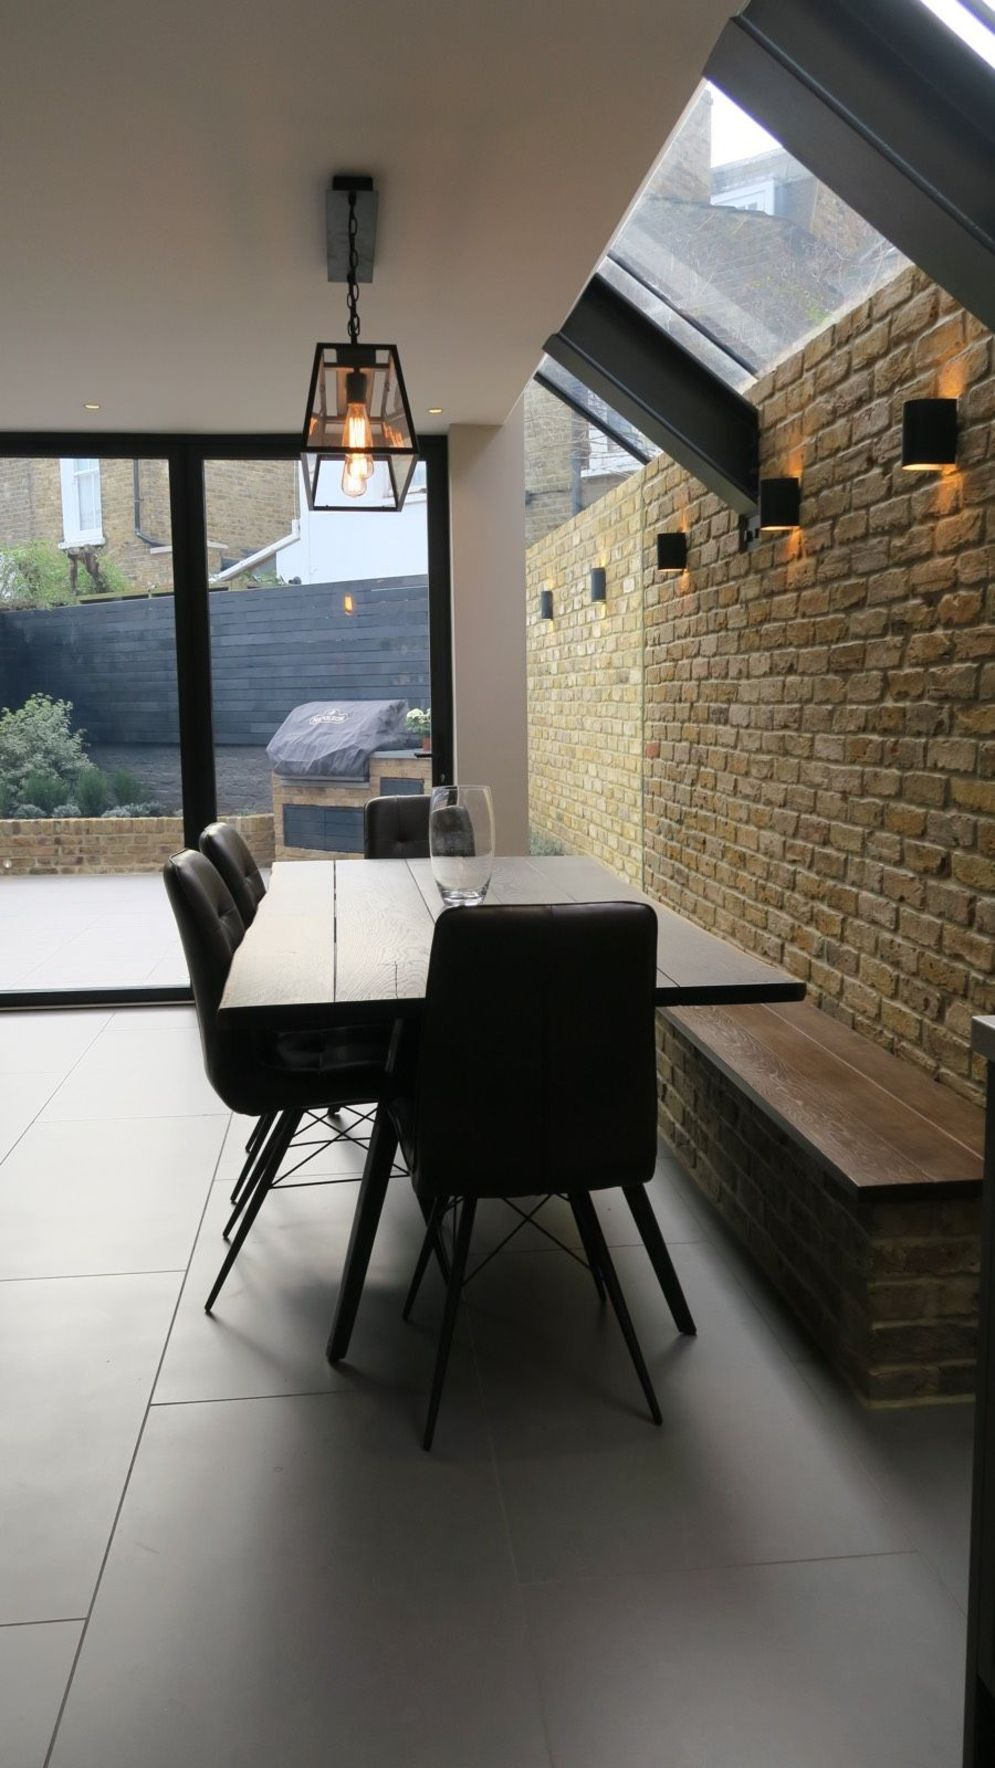 Wonderful interior statement brick wall improving interior display with modern rustic combination Image 27